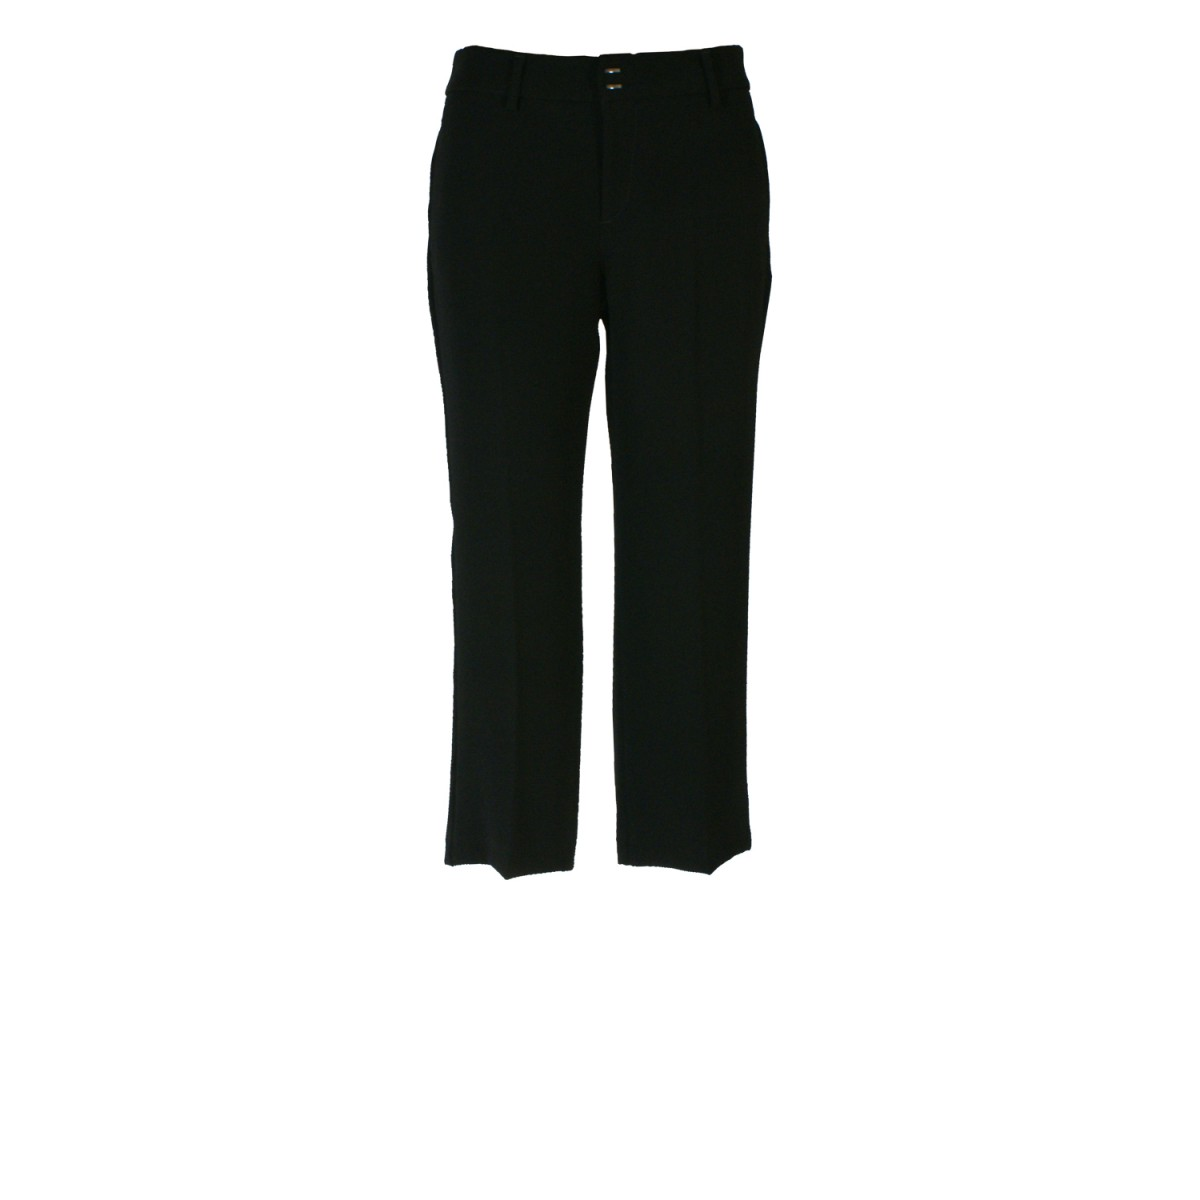 MAC Jeans Culotte Chic Black 4607 0156 090-30